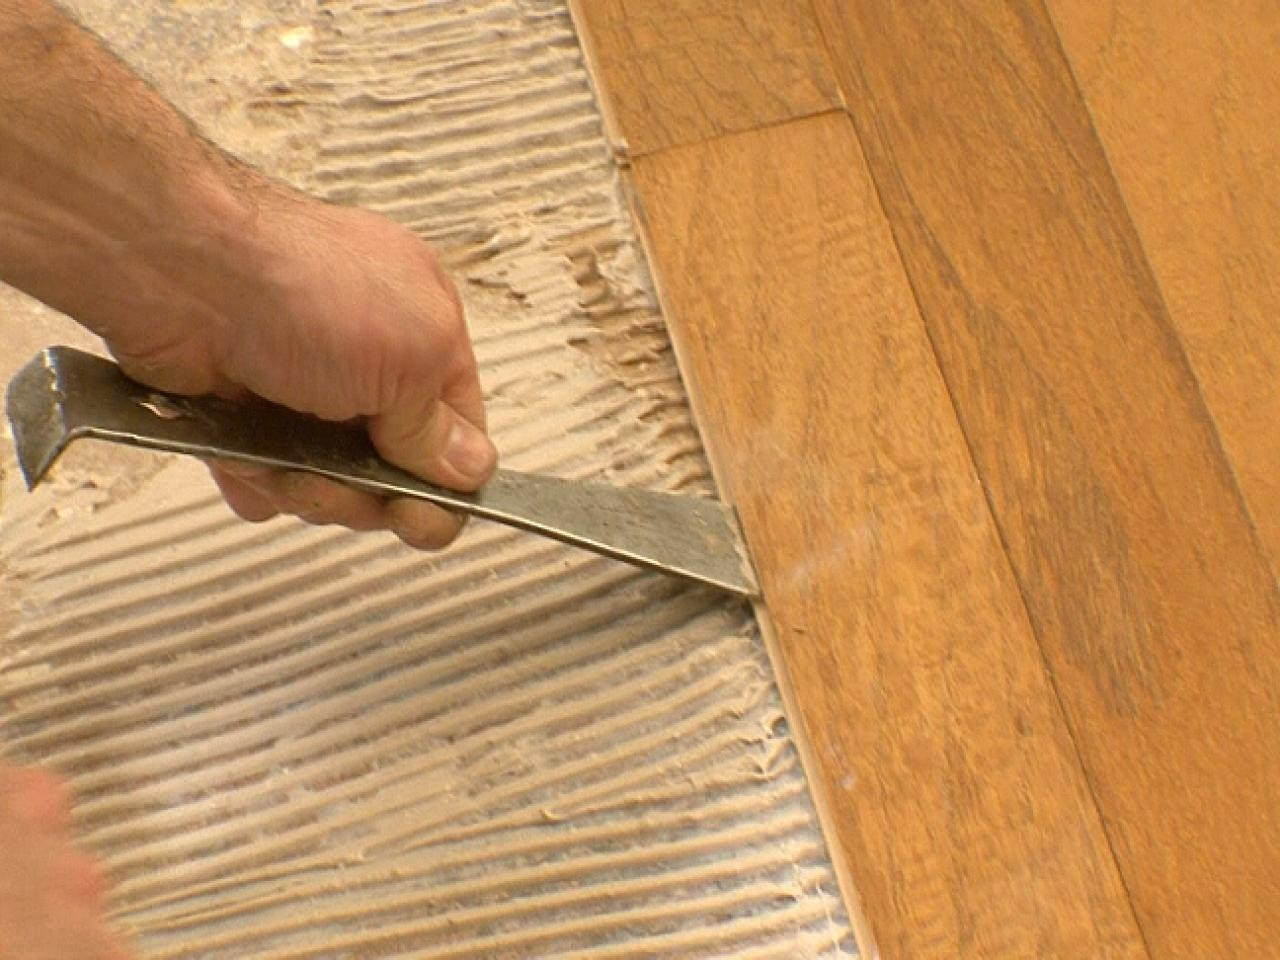 how to install engineered hardwood floors on concrete of 17 new cost of hardwood floor installation pics dizpos com pertaining to cost of hardwood floor installation new average cost engineered wood flooring per square foot flooring stock